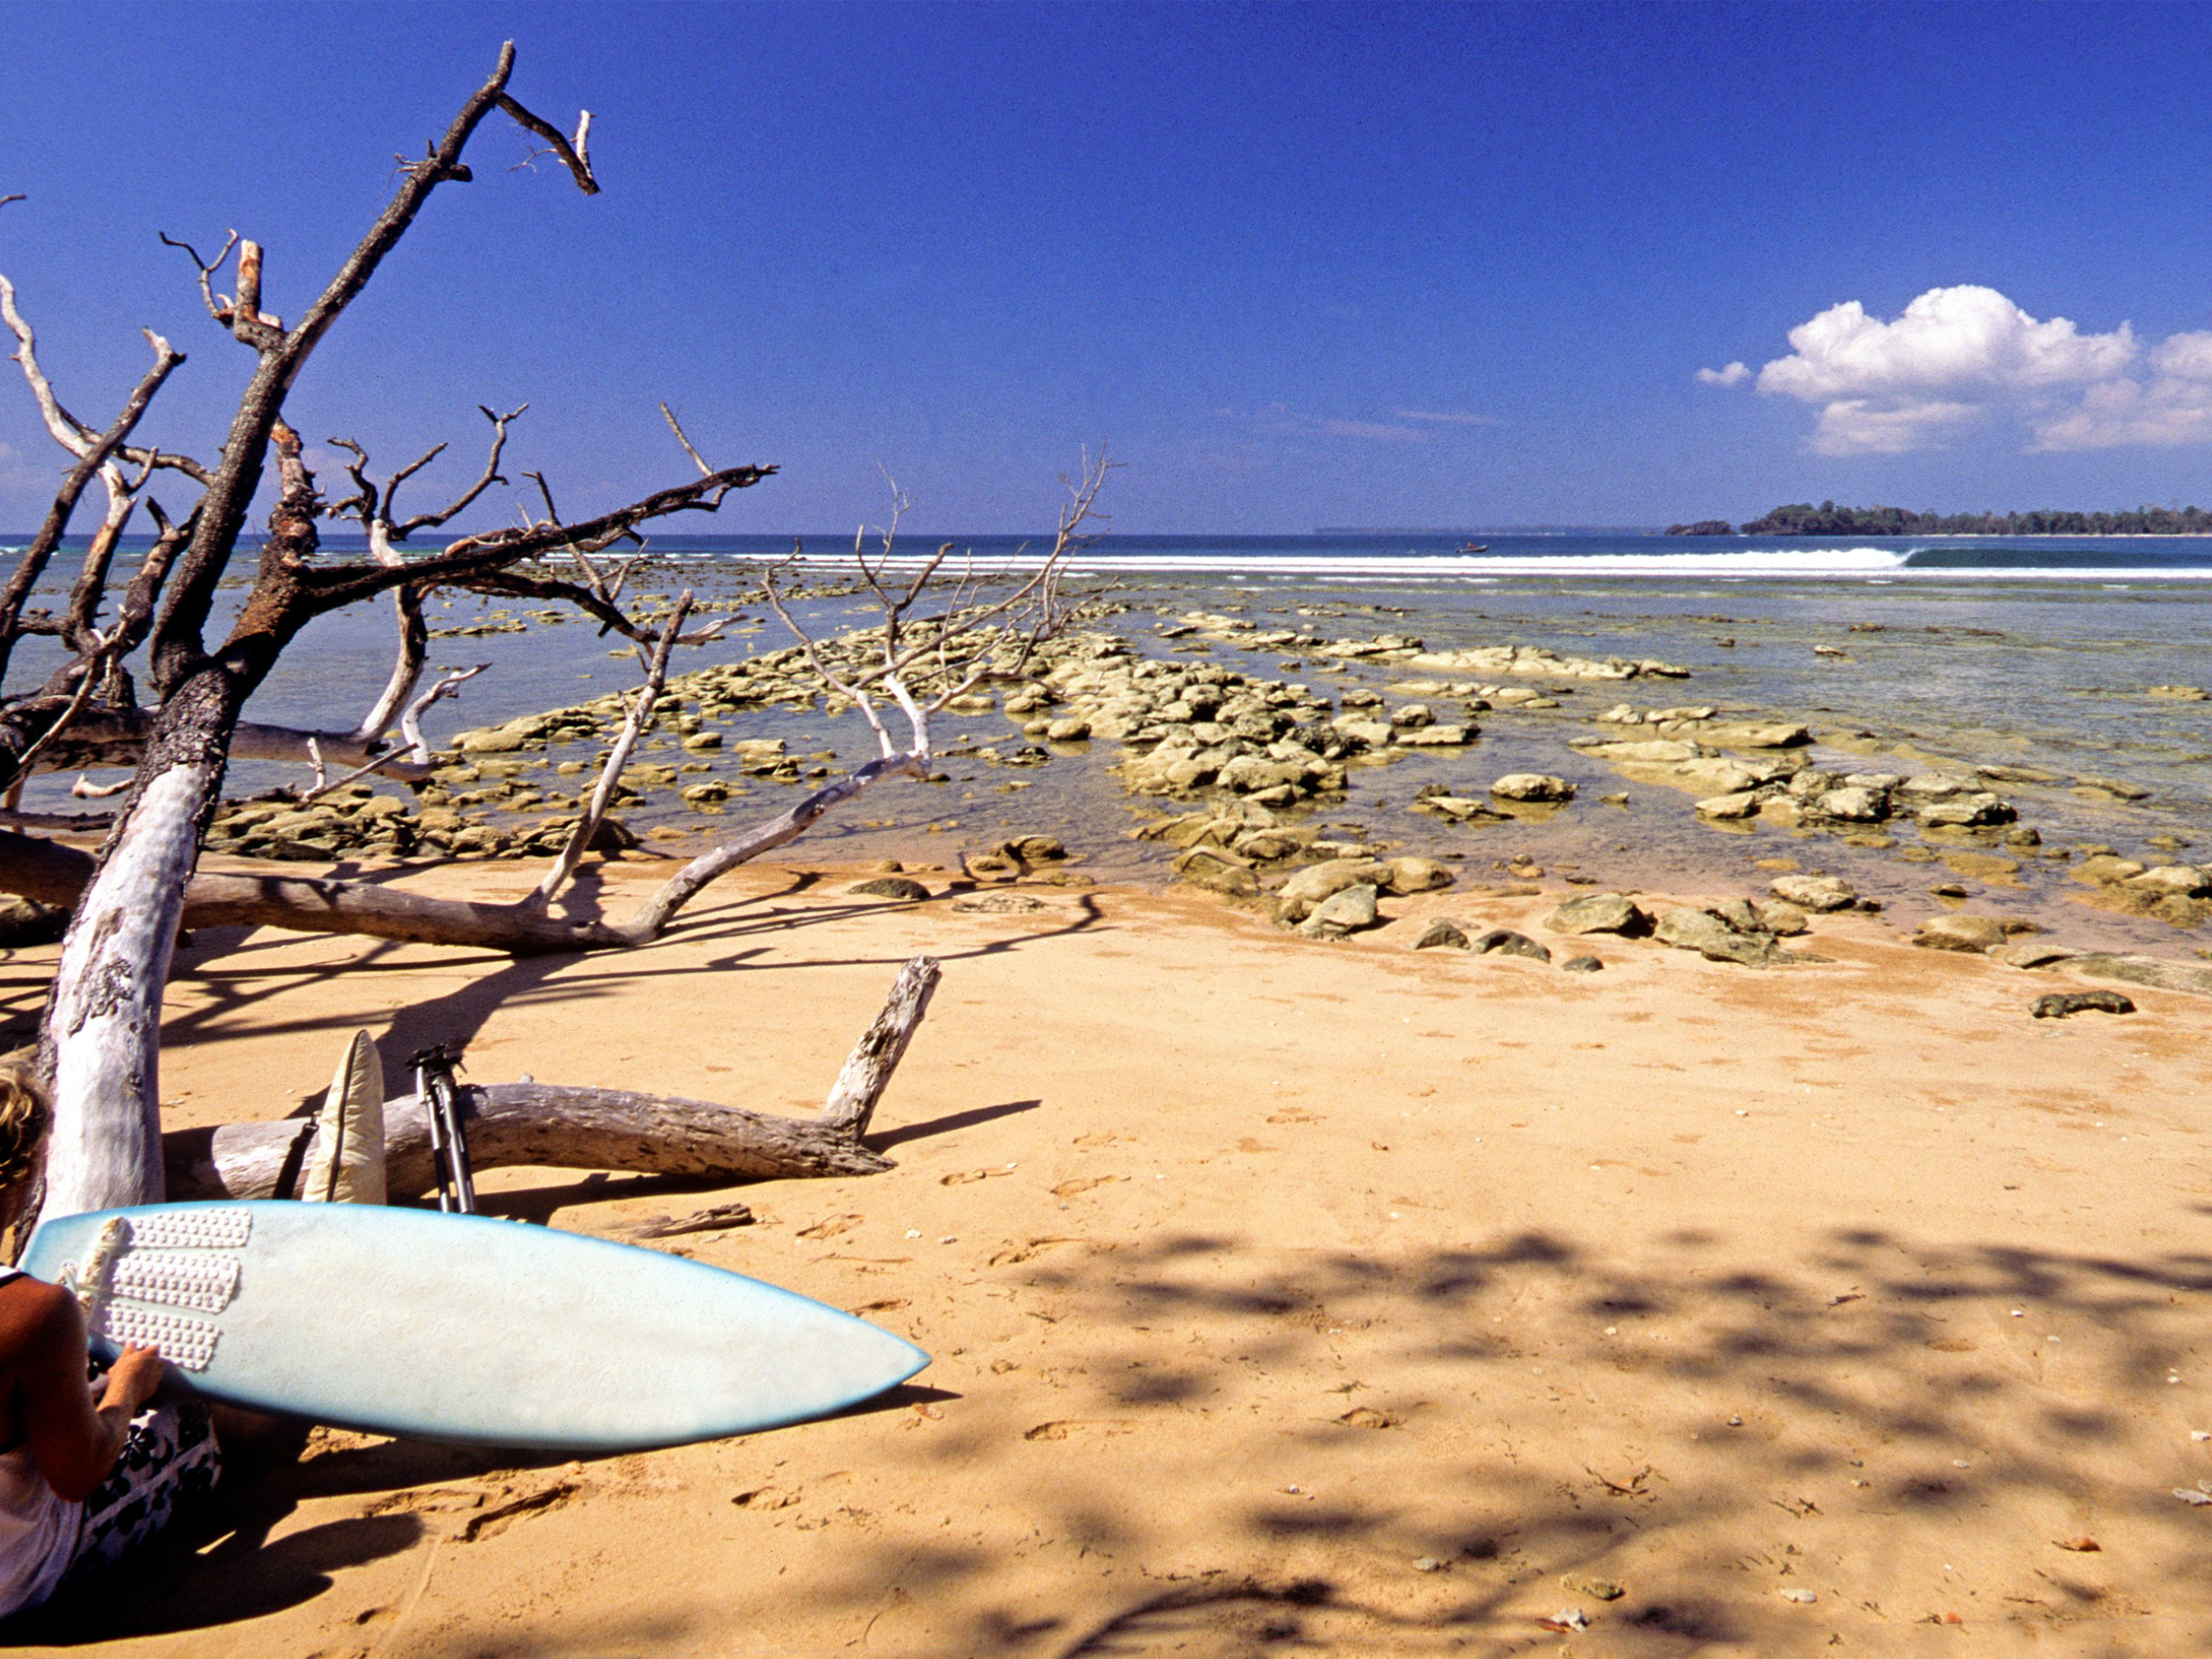 Surfing in India: 9 Top Places to Surf and Get Lessons